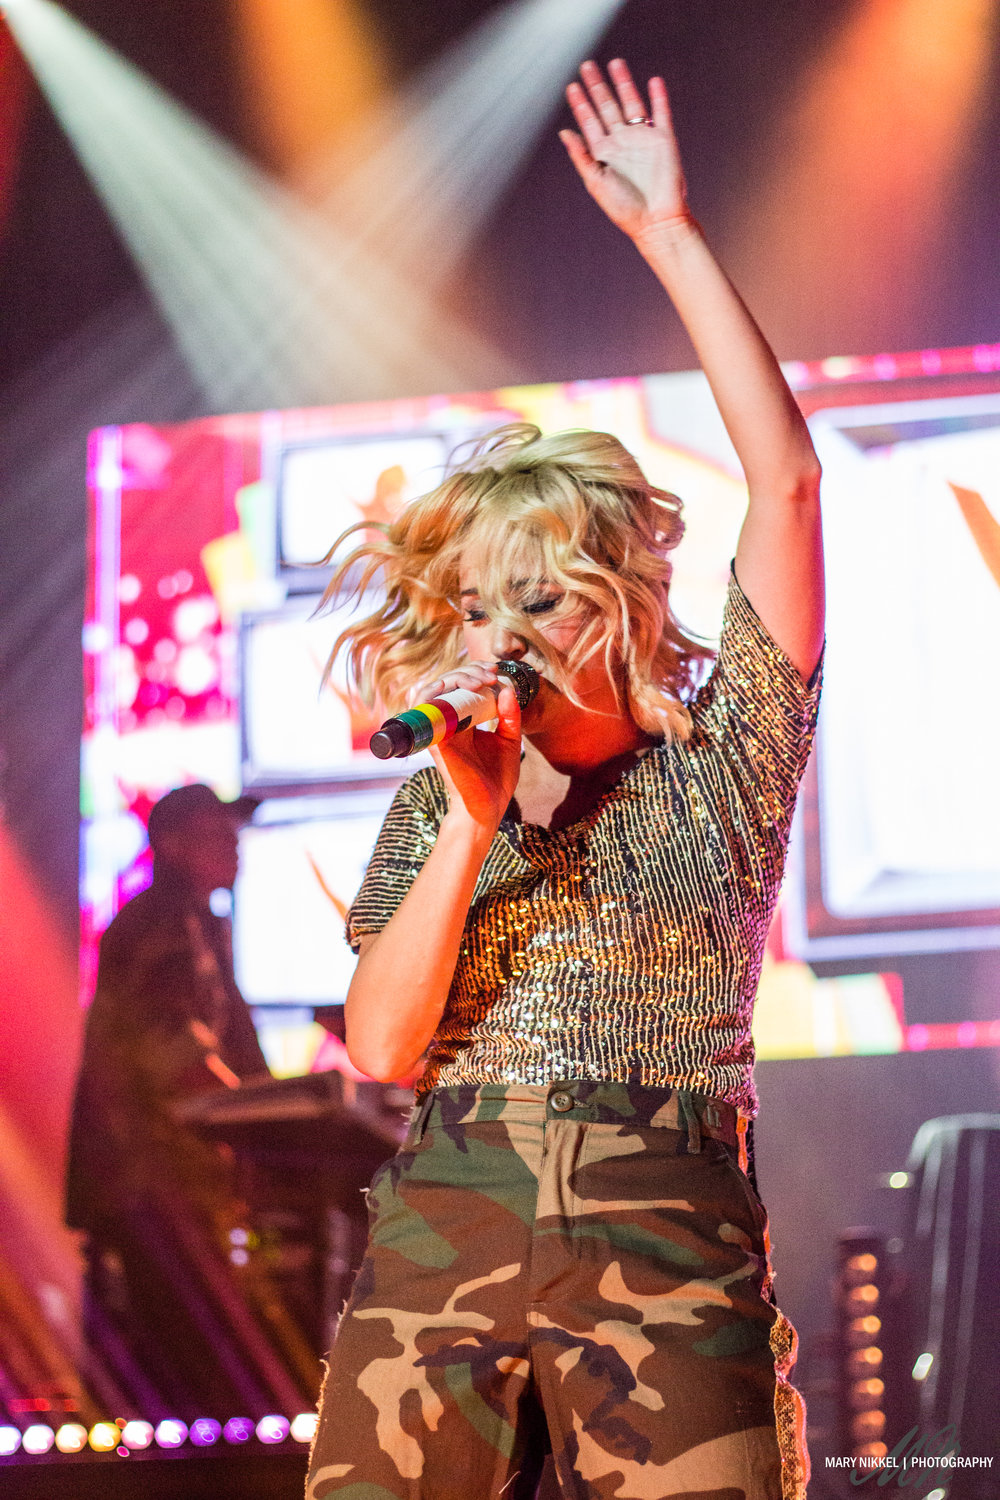 Britt Nicole, photographed on the Air1 Positive Hits tour in 2017; shared on her Facebook, Instagram, and Twitter to a combined 1.2 million followers